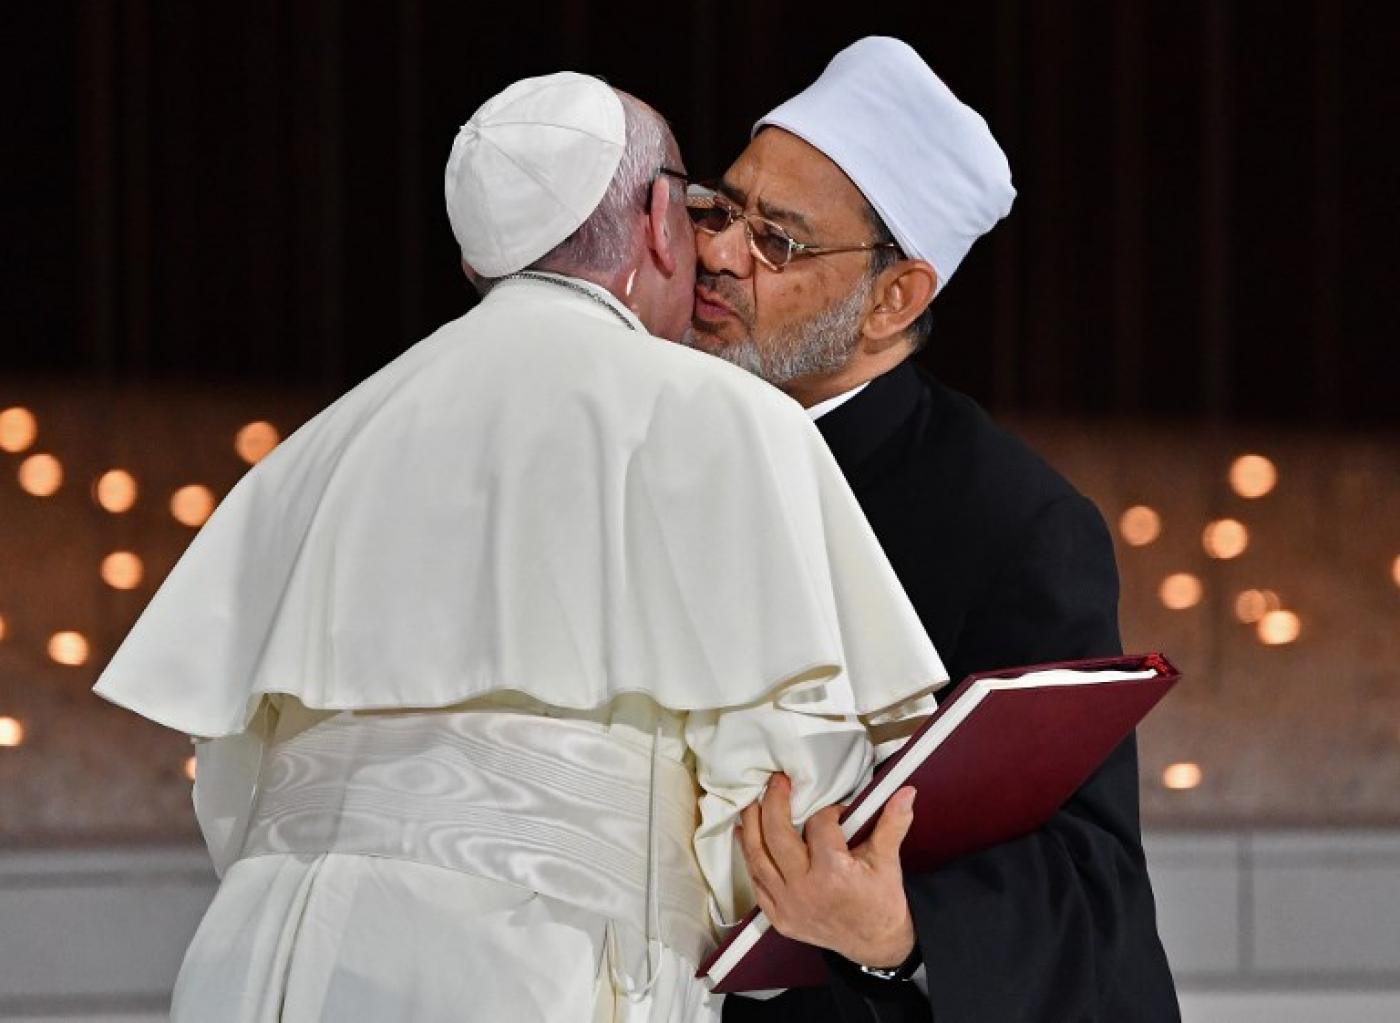 A milestone in the complex dialogue between Islam and Christianity